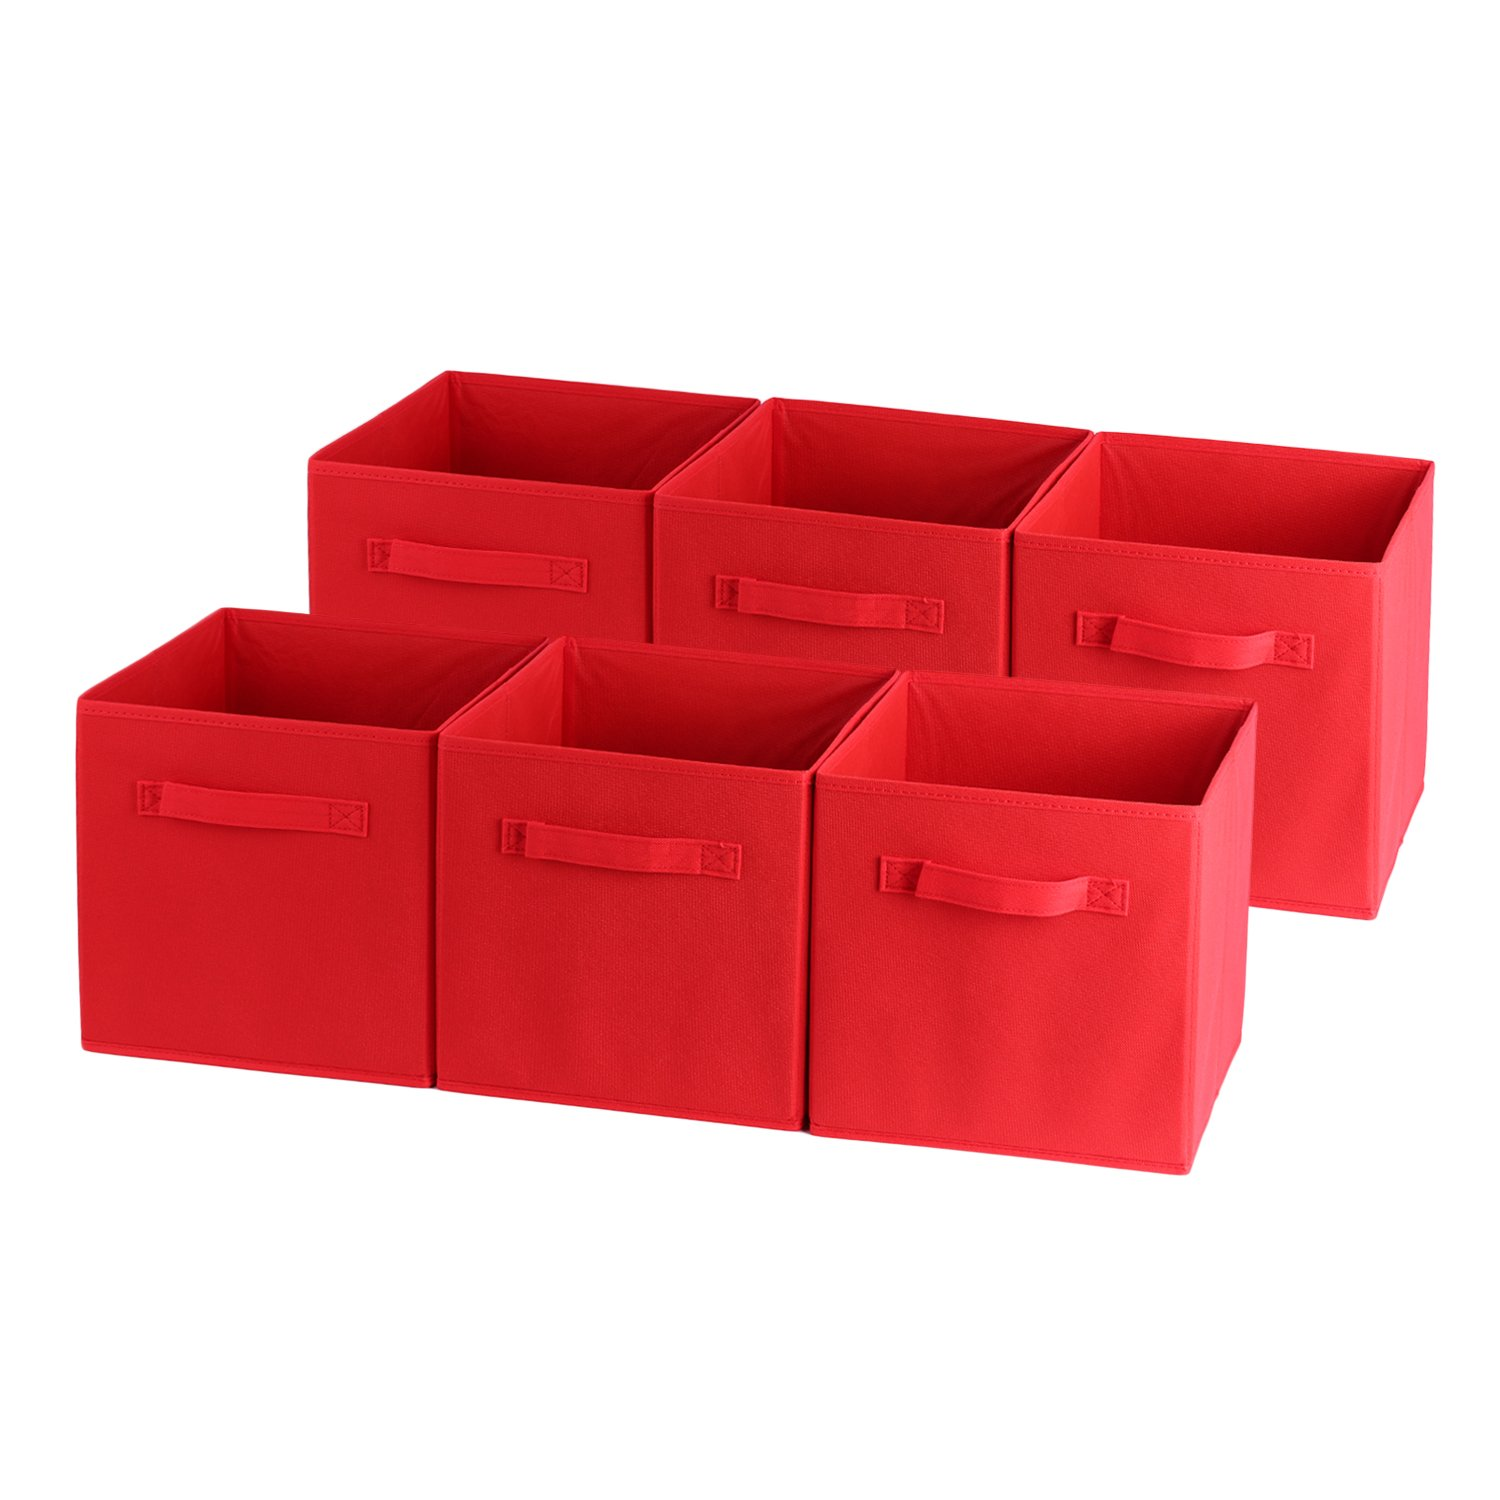 Fabric Drawer,Cozime Foldable Cloth Storage Cube Basket Bins Organizer Containers Drawers for Nurseries, Offices, Closets, Home, Cube Organizers & Everyday Storage Needs (6 PC Red) by Cozime